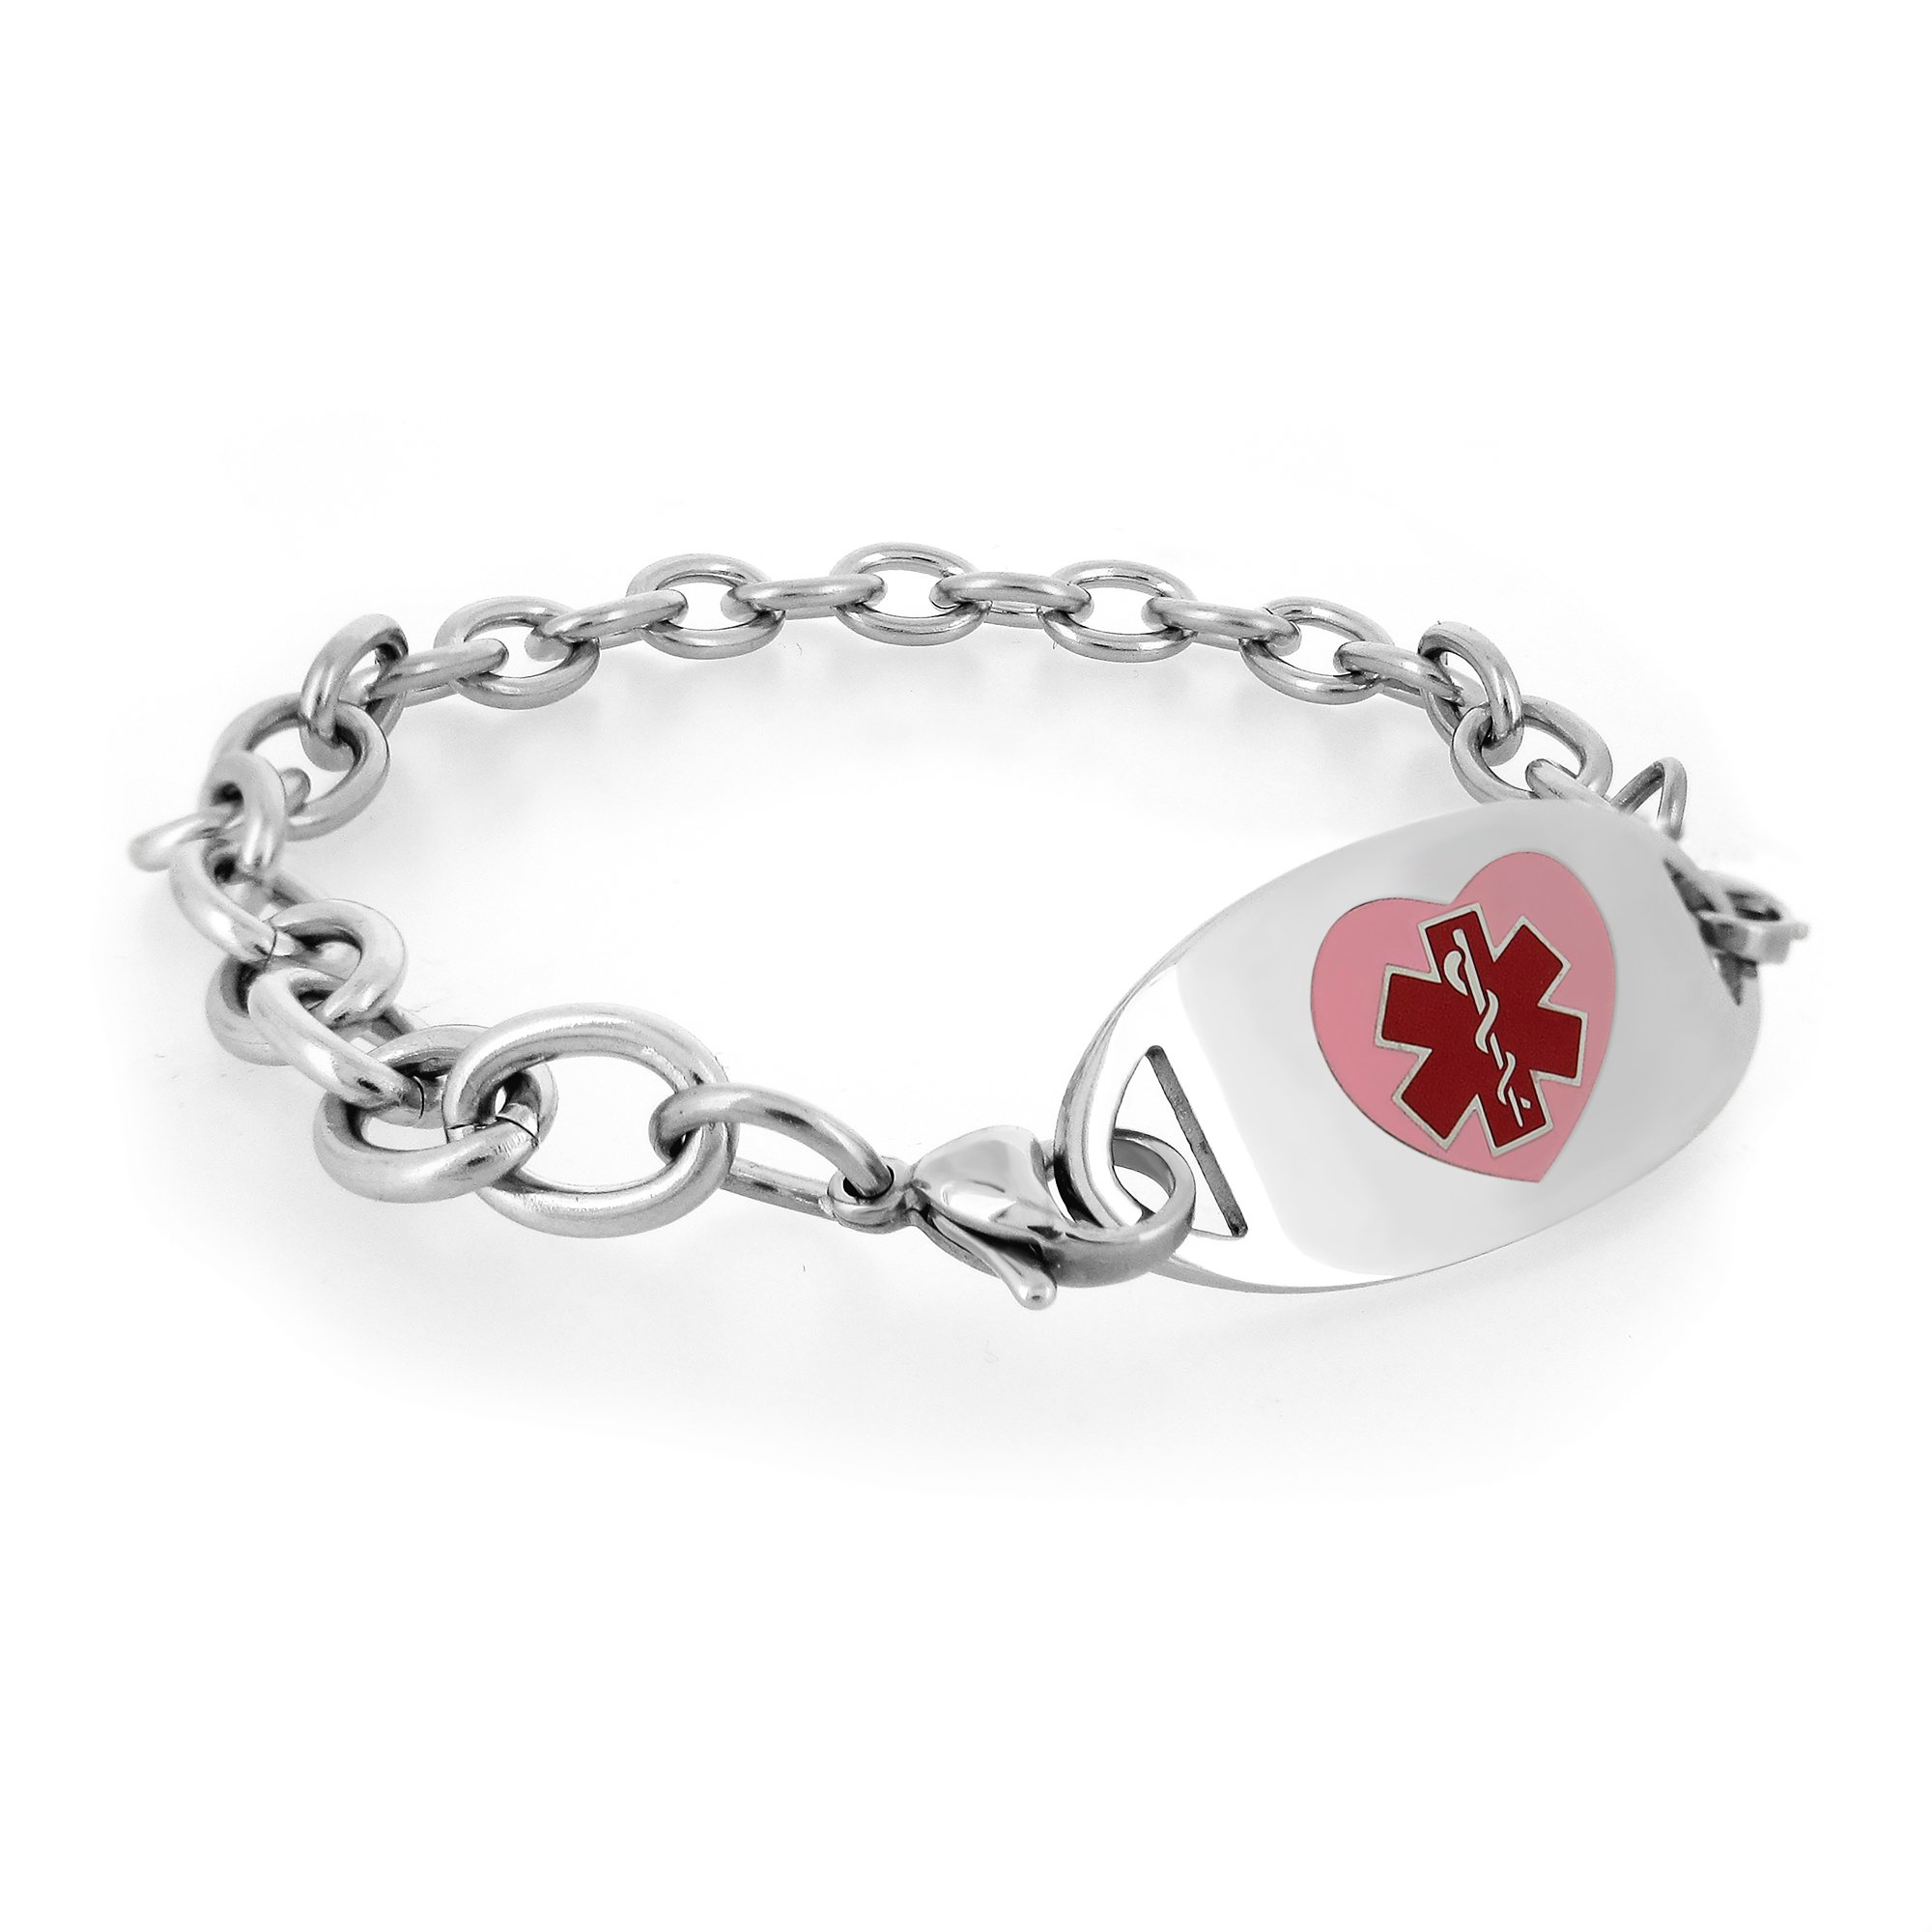 MedicEngraved Womens Stainless Steel Medical ID Bracelet with Pink Heart Enamel Medical Tag - 6.5in (LS-PHT)